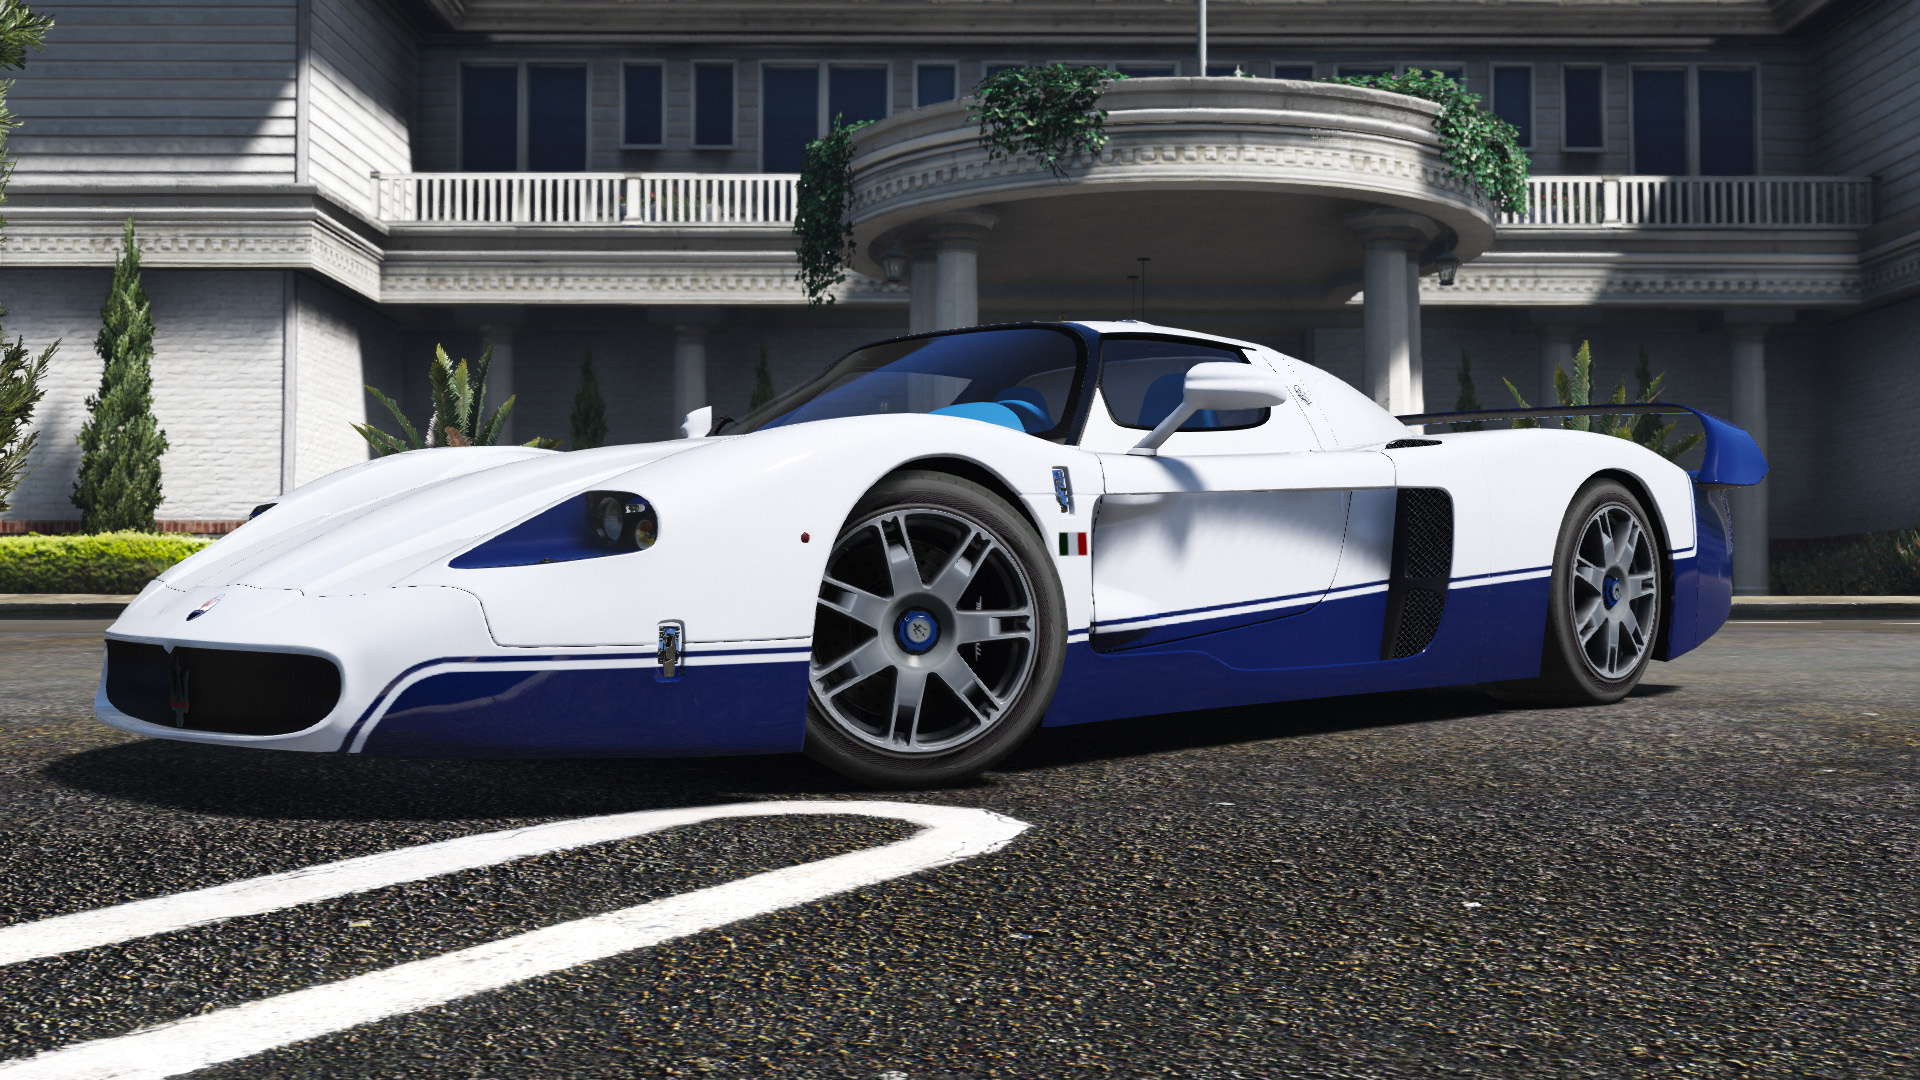 Maserati MC12 [Add-On | Tuning | Template] - GTA5-Mods.com